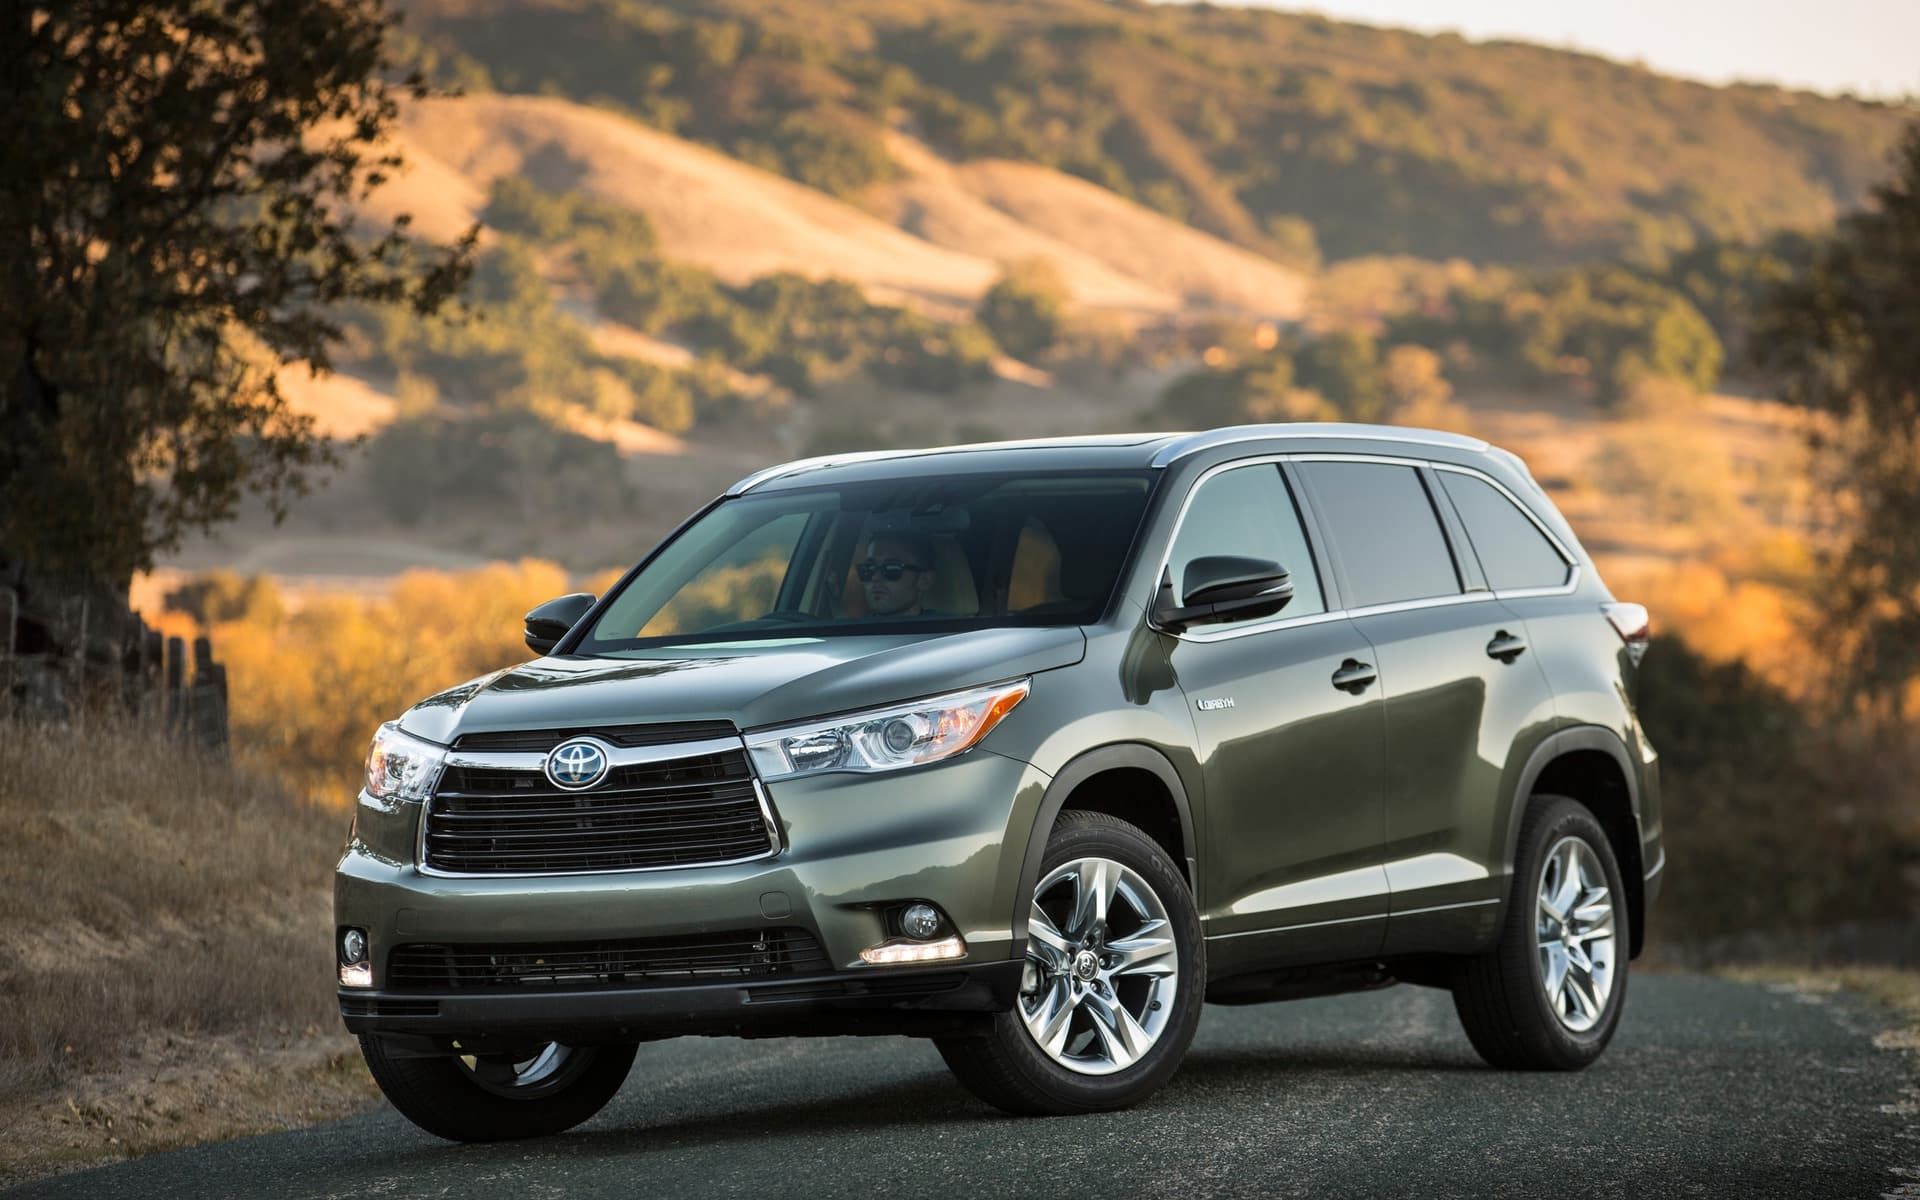 Toyota Highlander 2016 Wallpapers Hd High Resolution